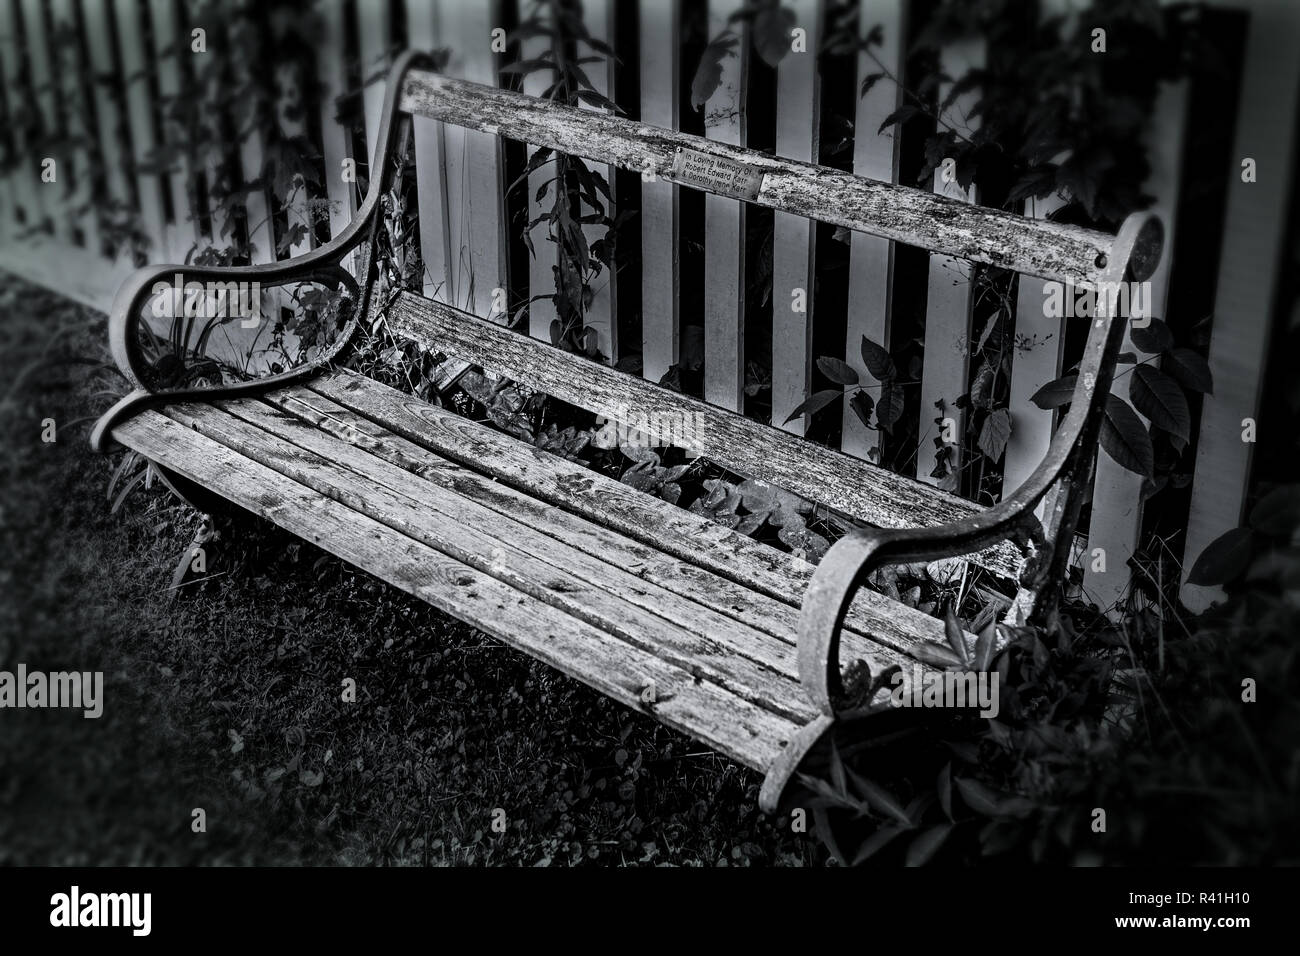 Very old and wrecked memorial bench. N/B - Stock Image